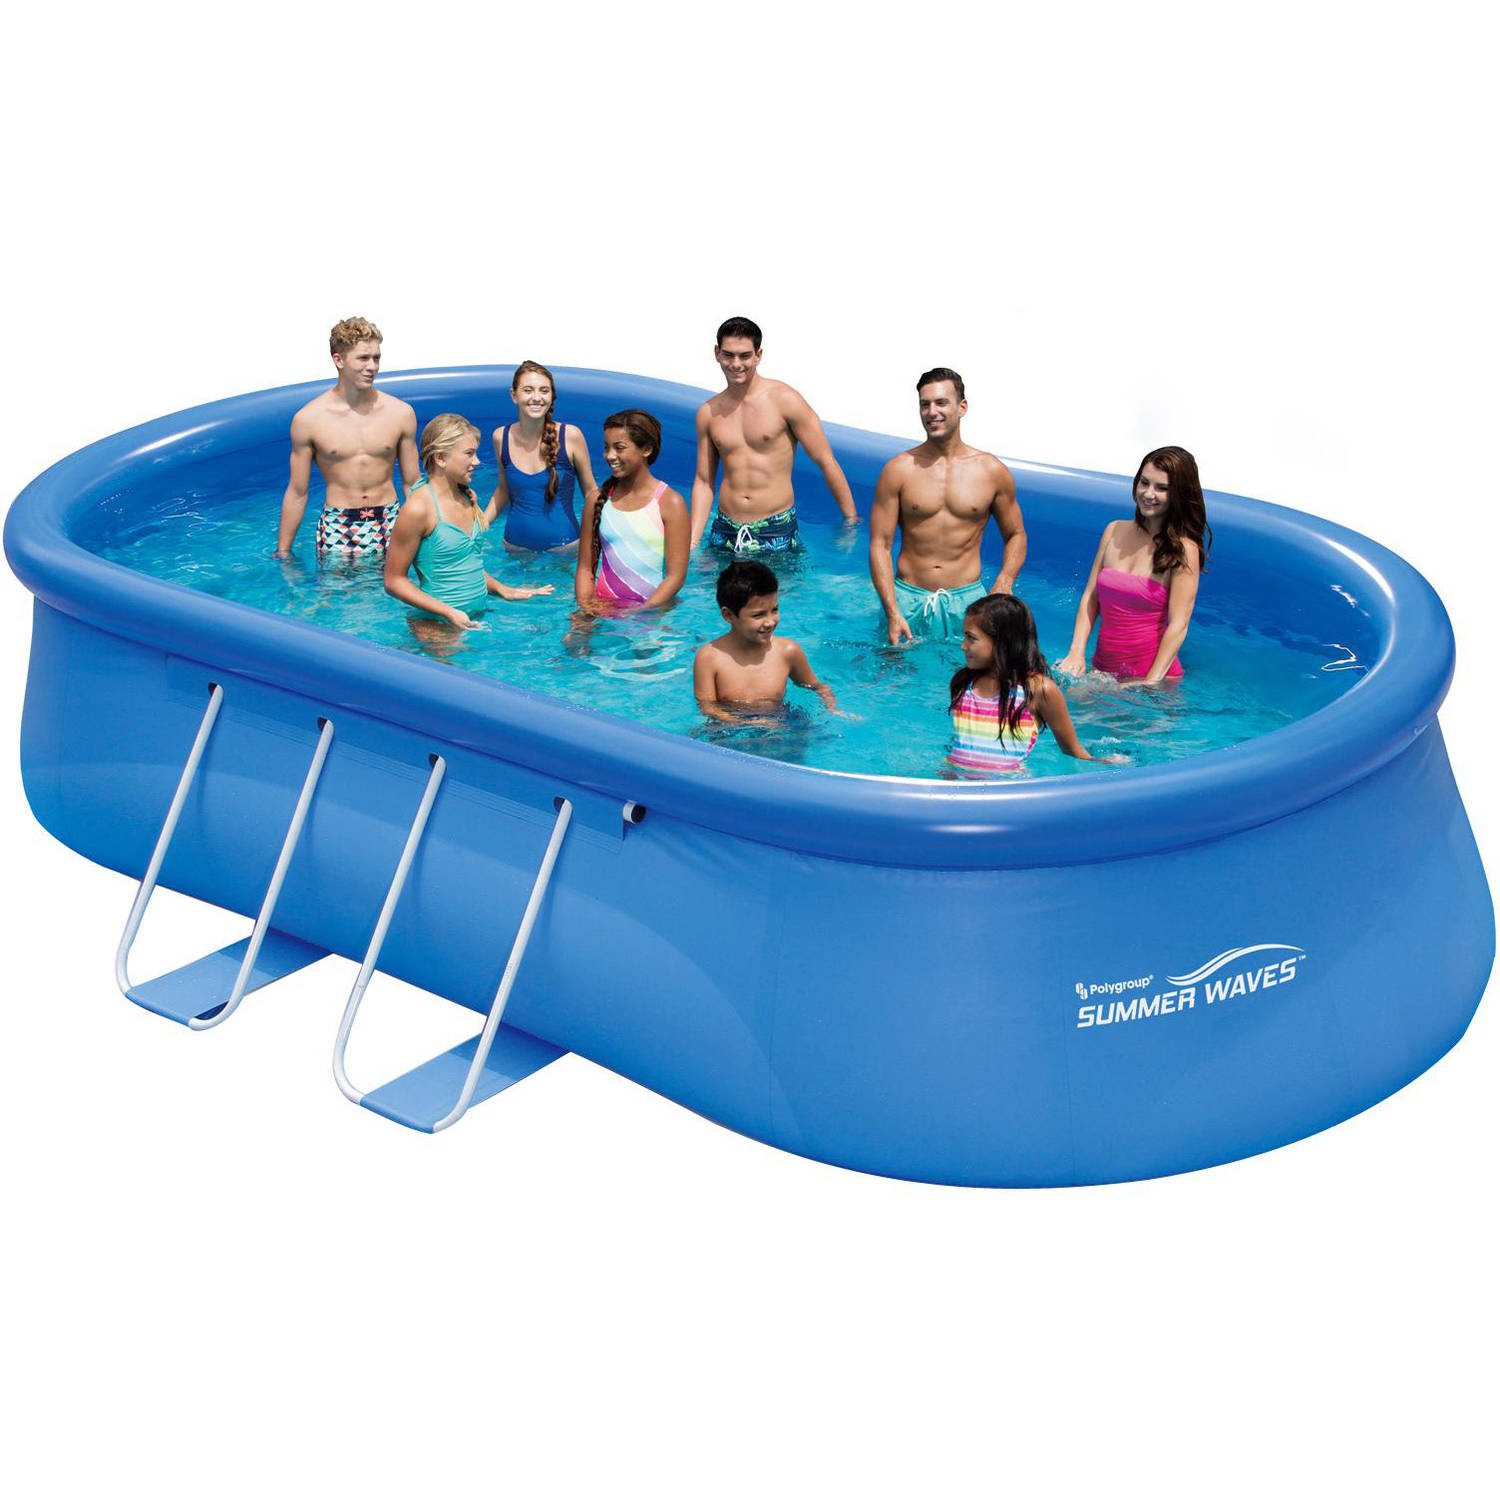 "Summer Waves 18' x 10' x 42"" Quick Set Oval Frame Above Ground Swimming Pool with Deluxe Accessory Set"